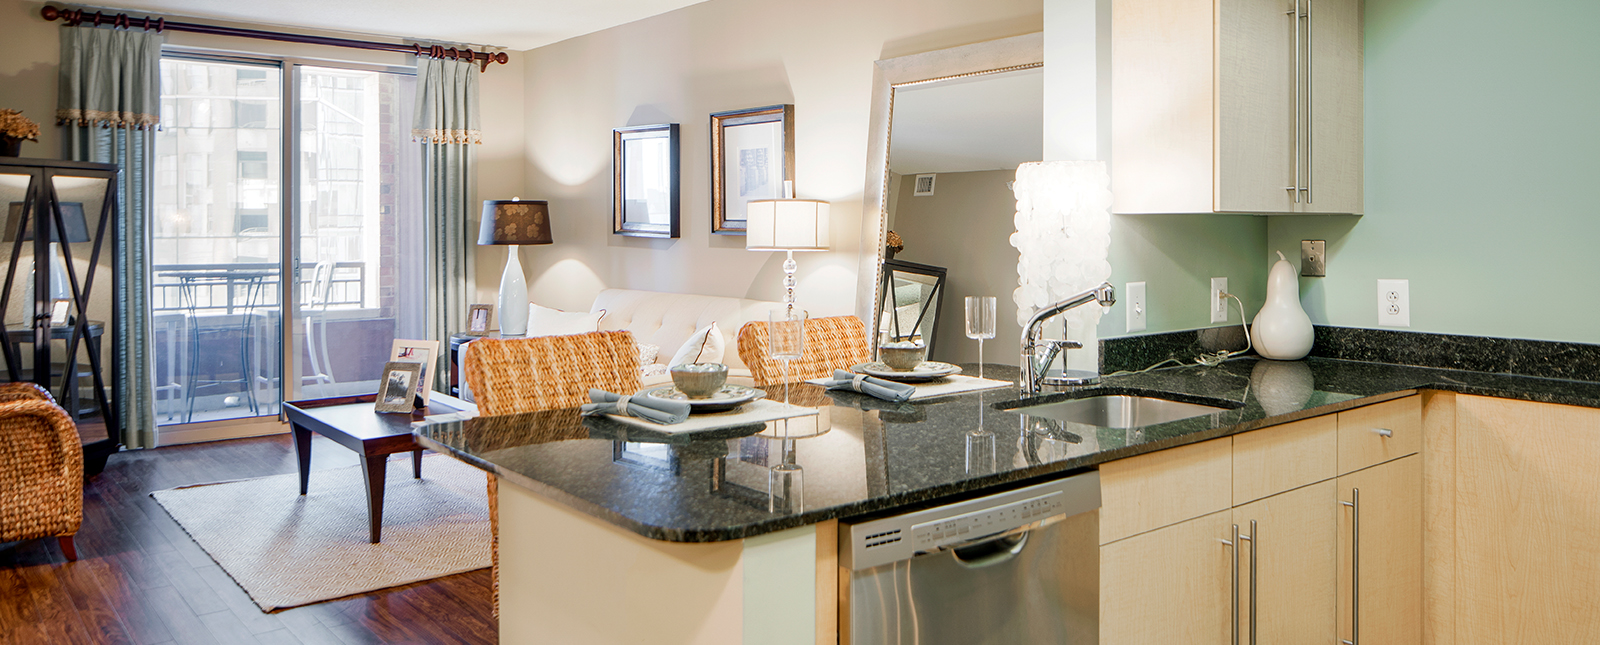 Open-plan kitchen at Spinnaker Bay Serviced Apartments